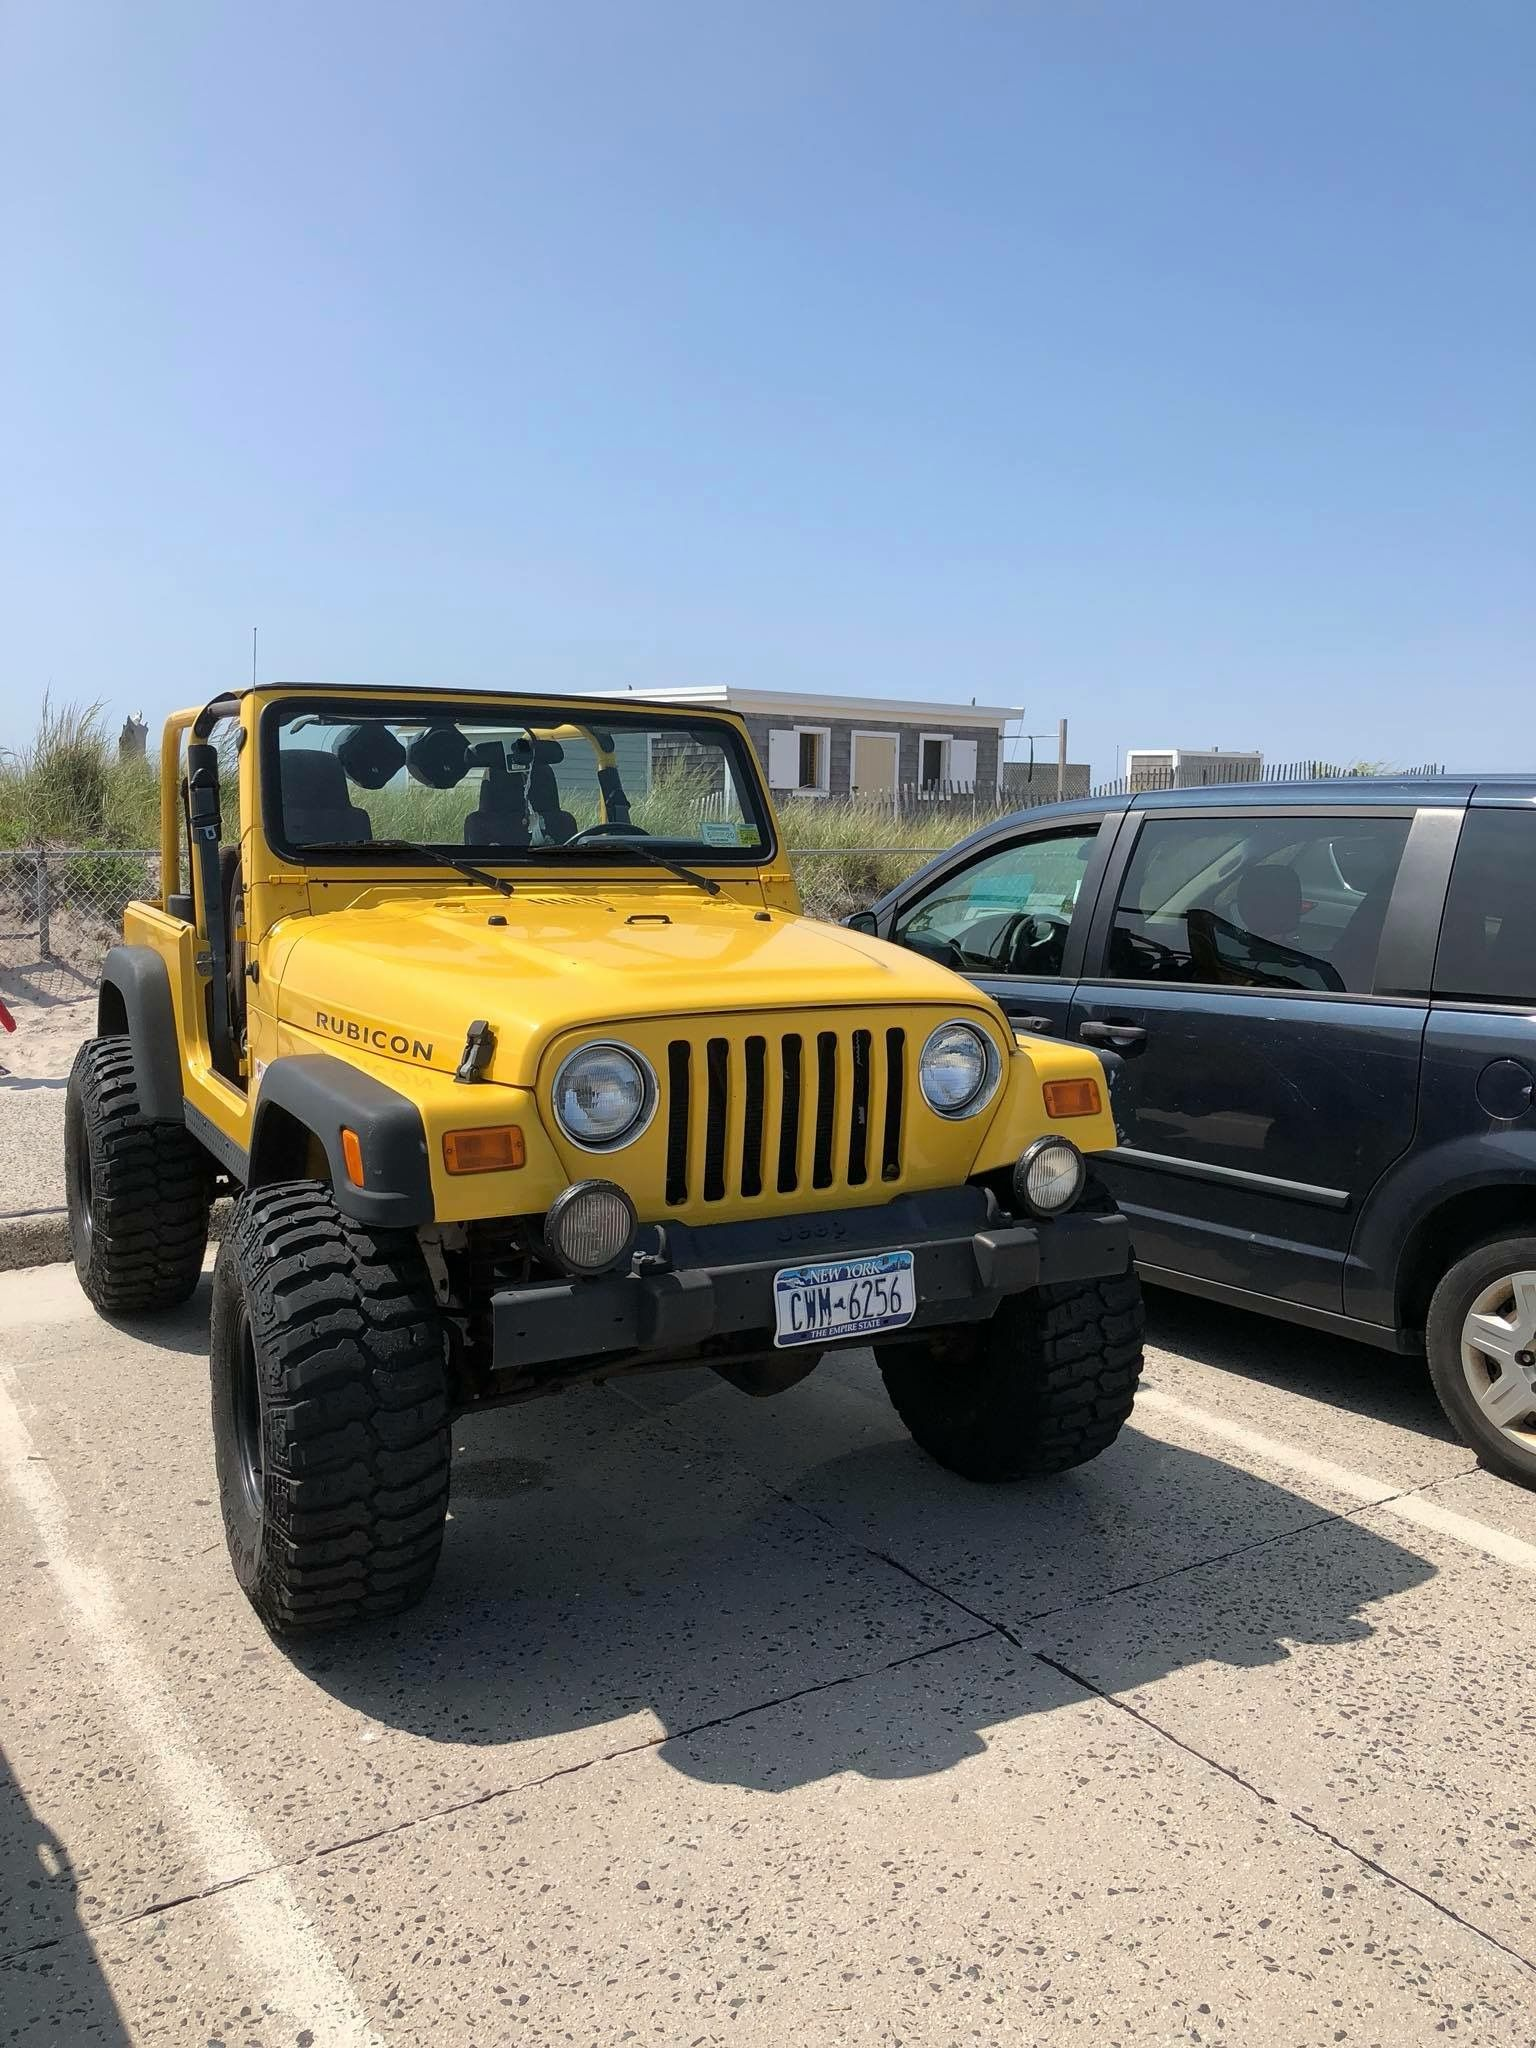 Pin by Frank Molinero on Jeep Wrangler YJ & TJ, Jeep Life